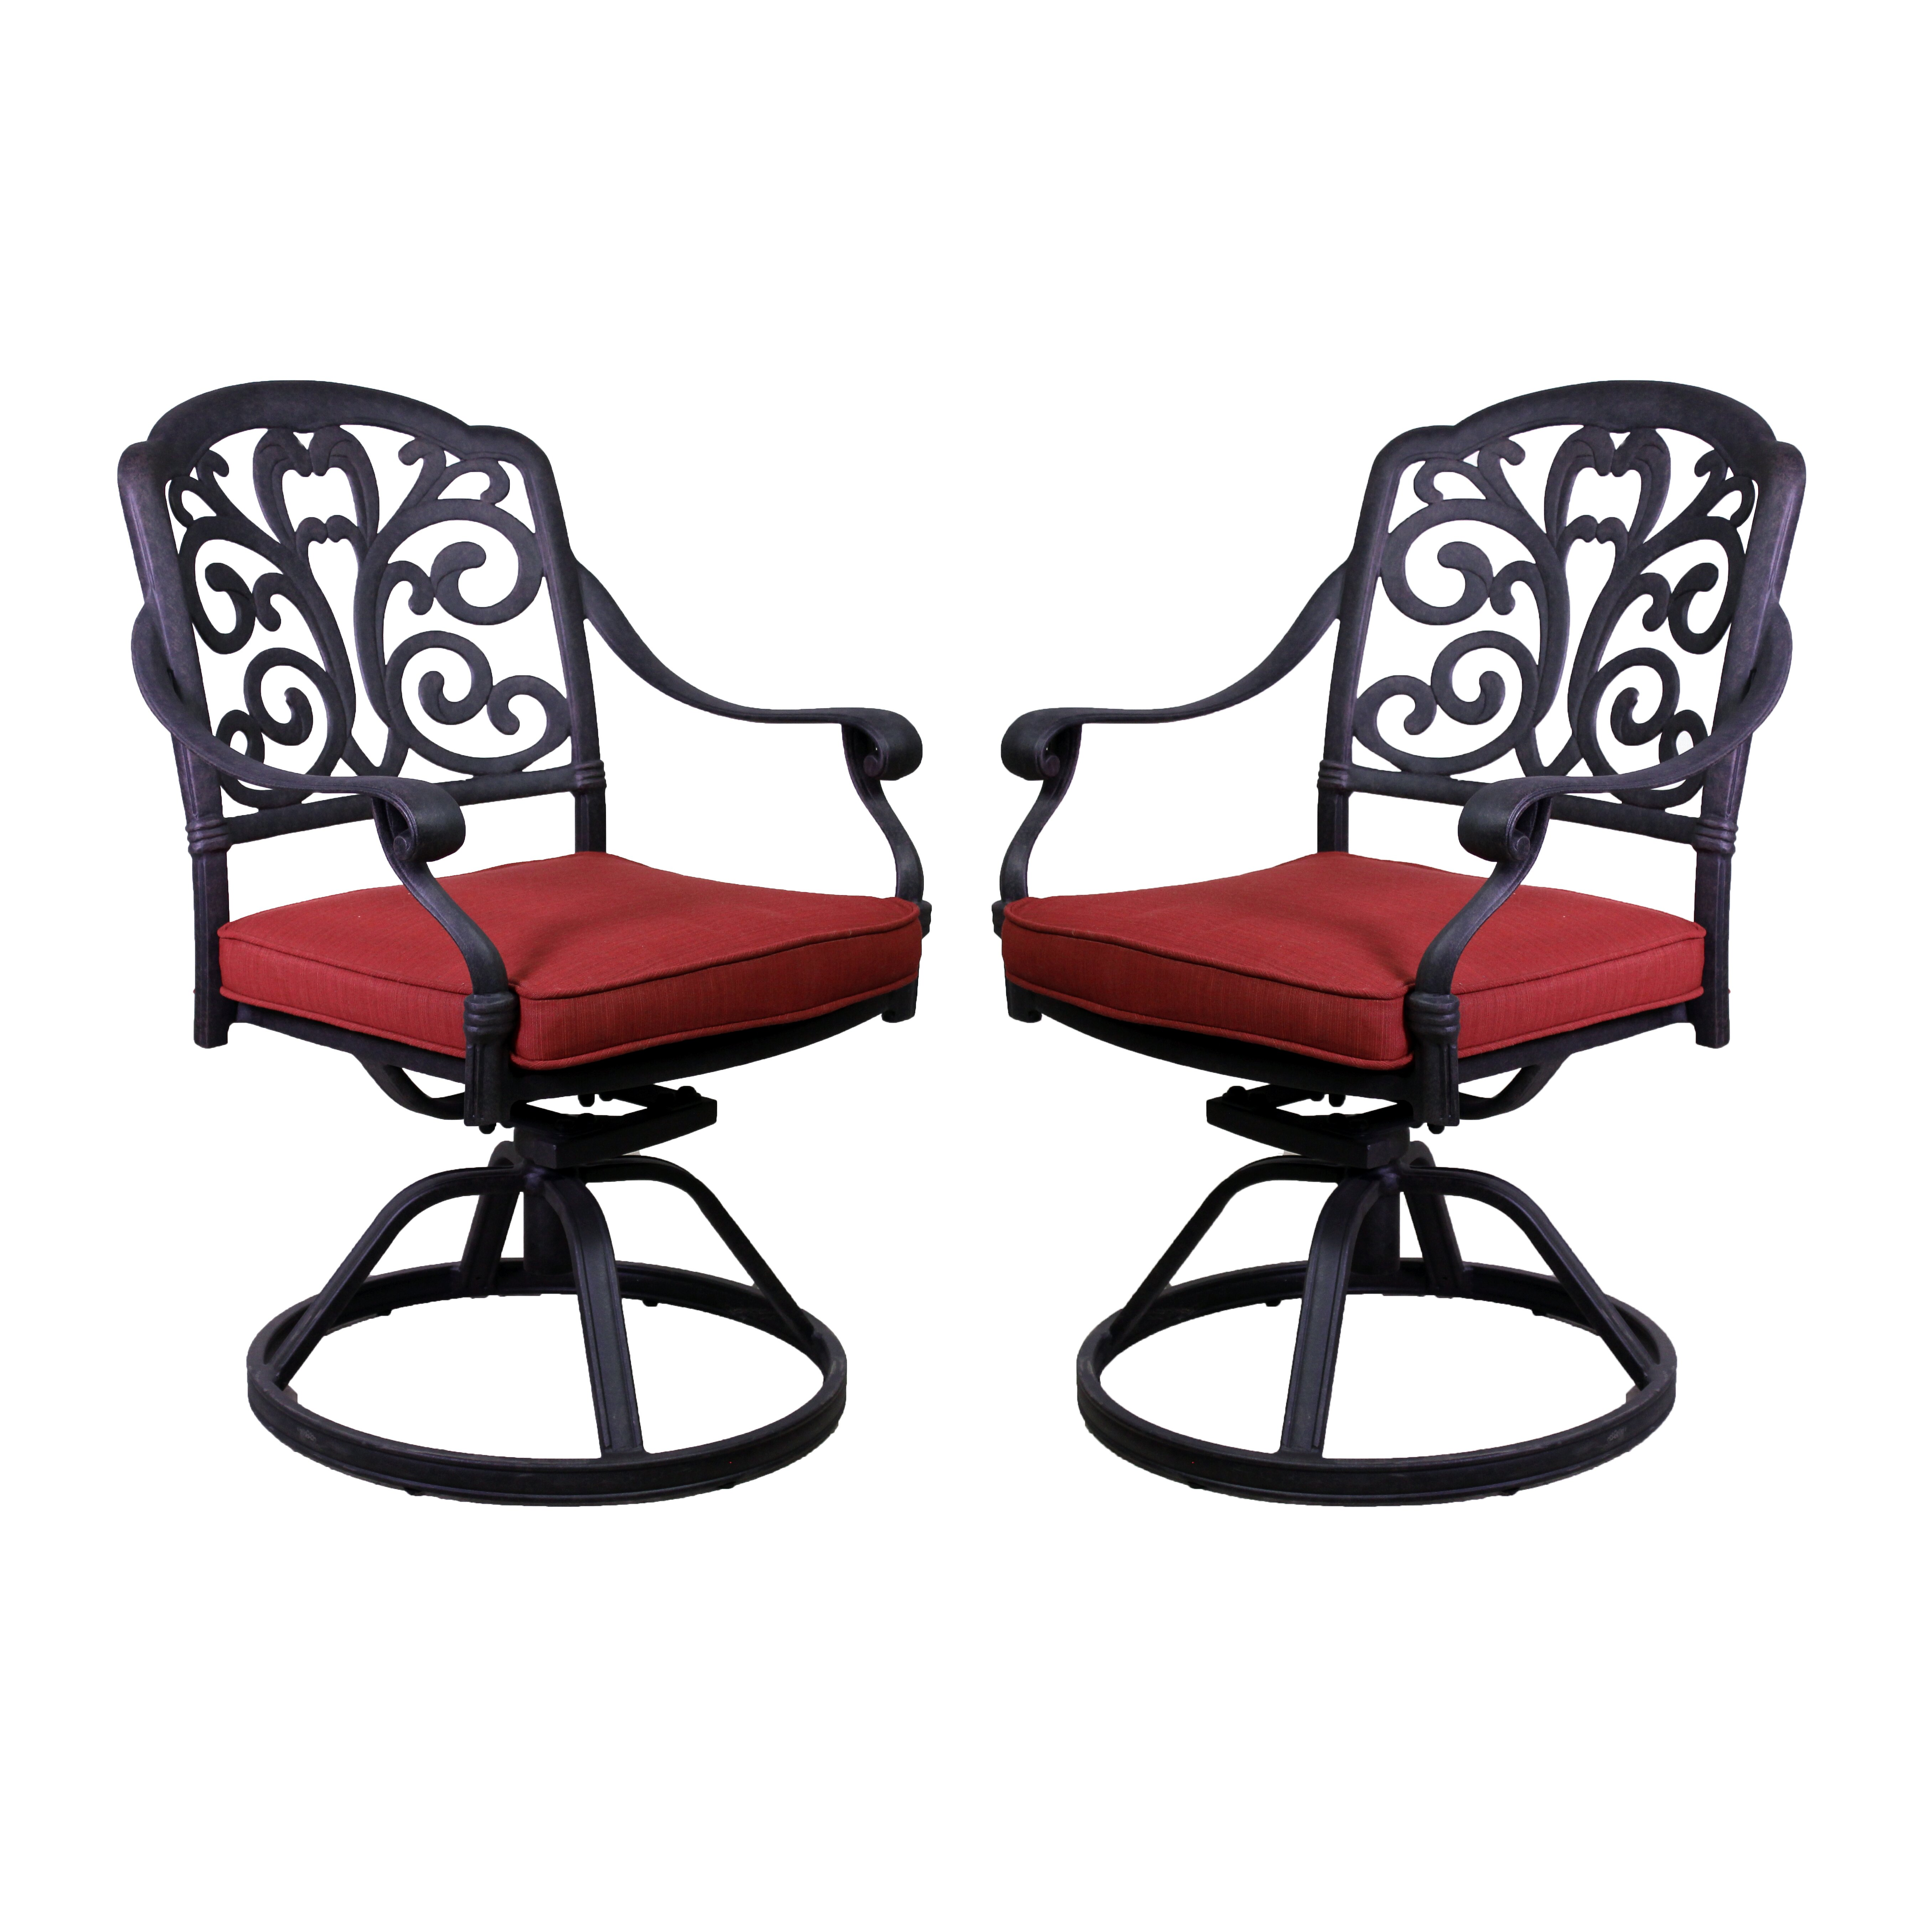 California Outdoor Designs Roma Swivel Rocking Chair Set with Dupione ...